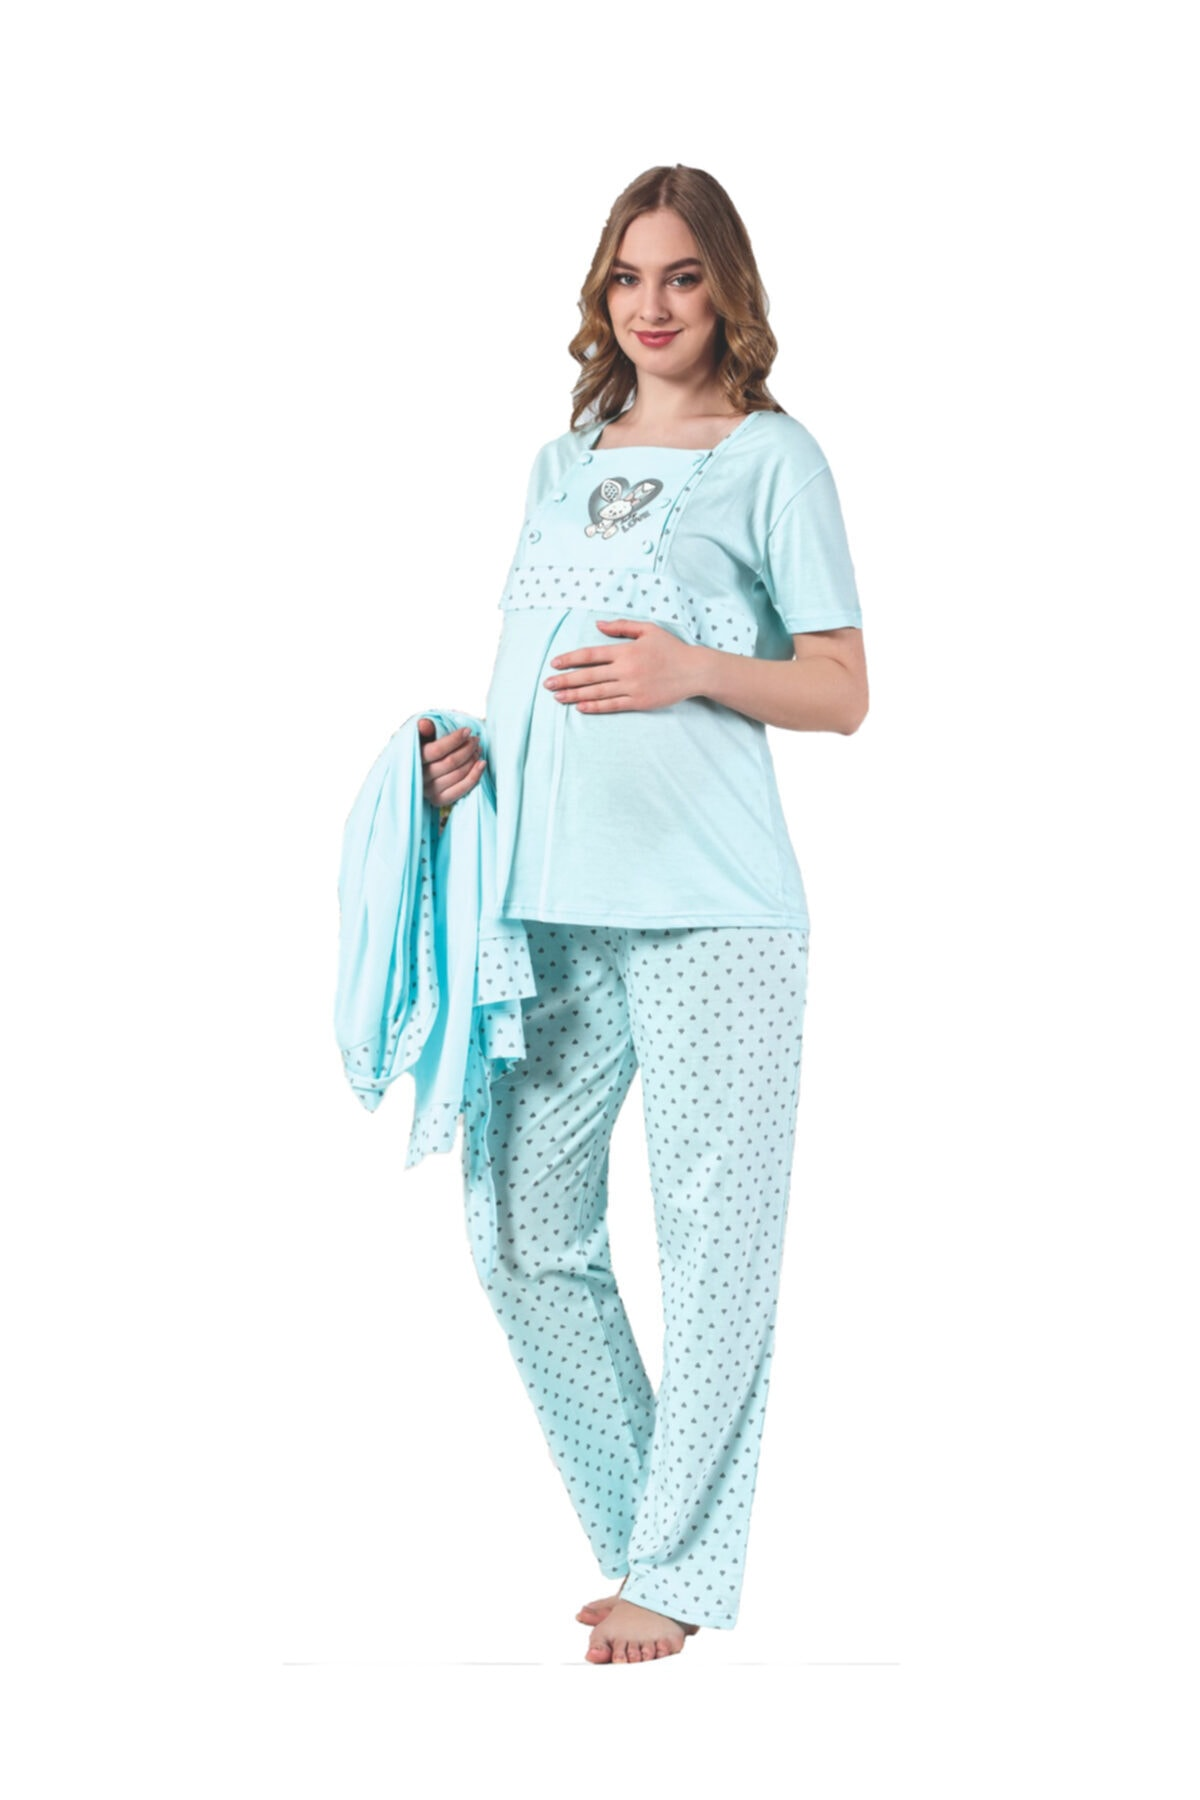 Maternity Sleepwear Team Emzirmeli Sabahlıklı Short Sleeve 3 Pcs Set 7103 enlarge